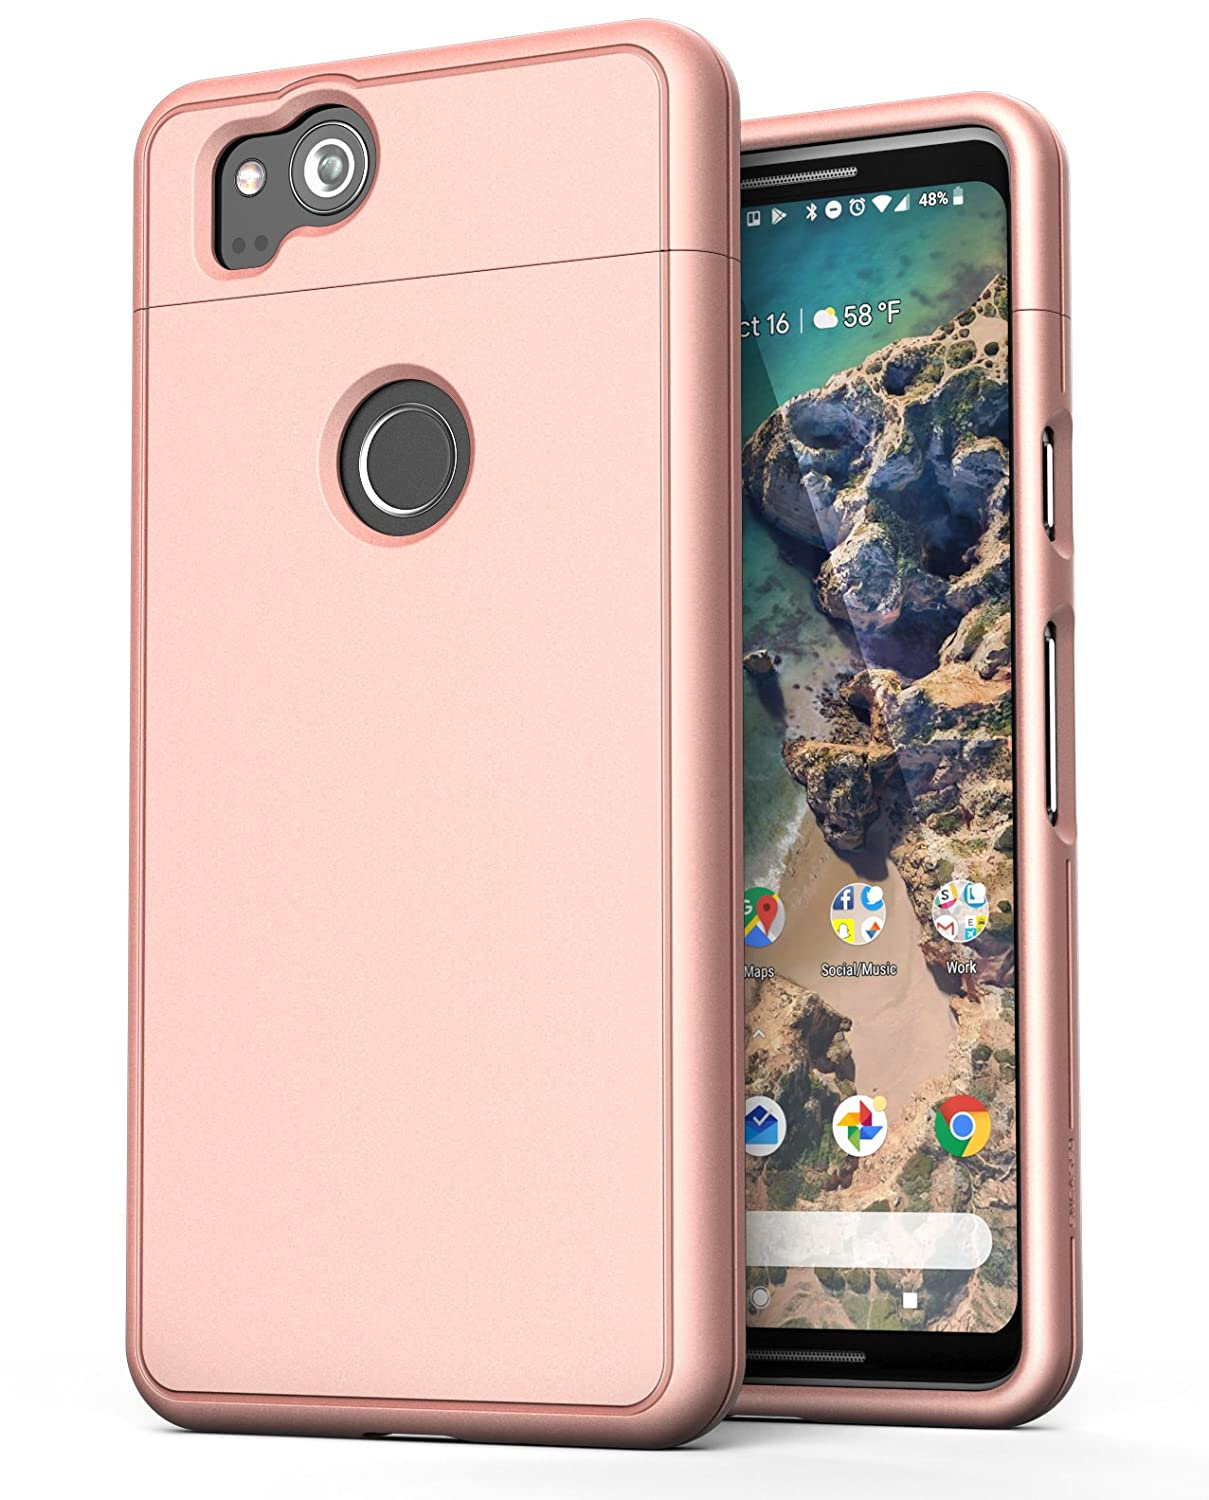 reputable site ceac9 14788 Google Pixel 2 XL Case Rose Gold - Encased (SlimShield Edition) Full  Coverage Protective Grip Cases for Google Pixel2 XL (2017)